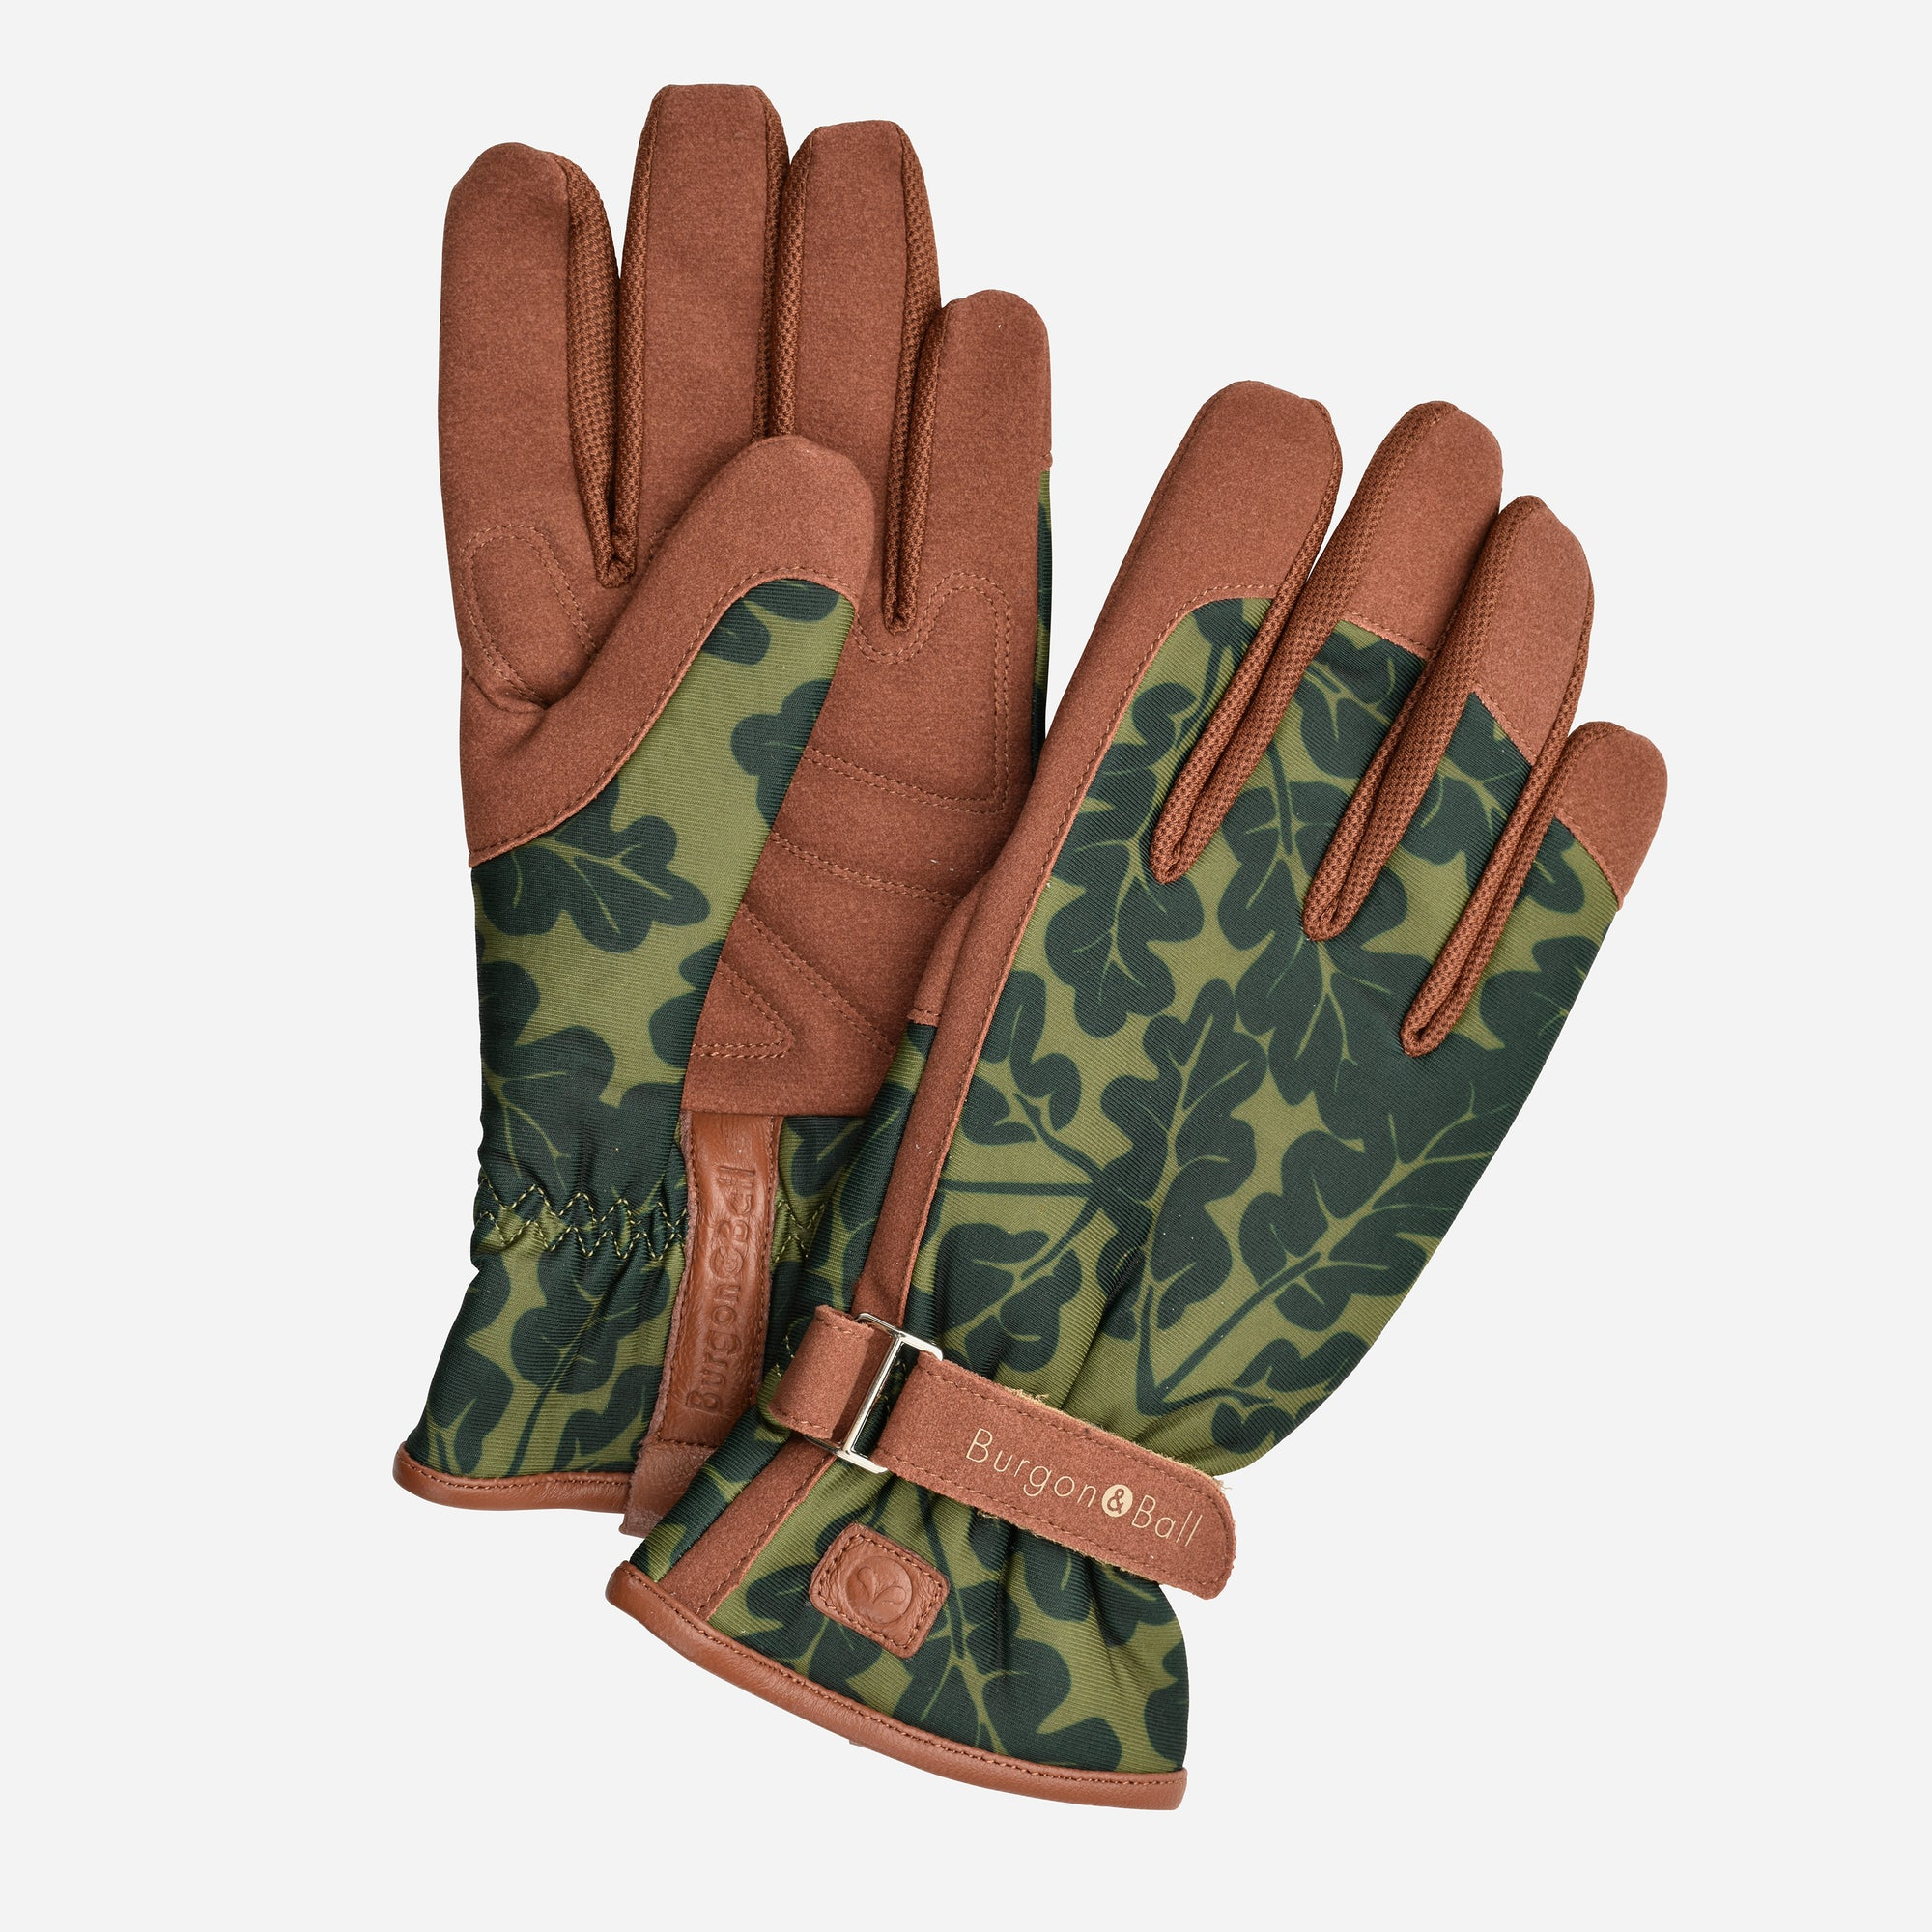 'Love the Glove' Garden Gloves